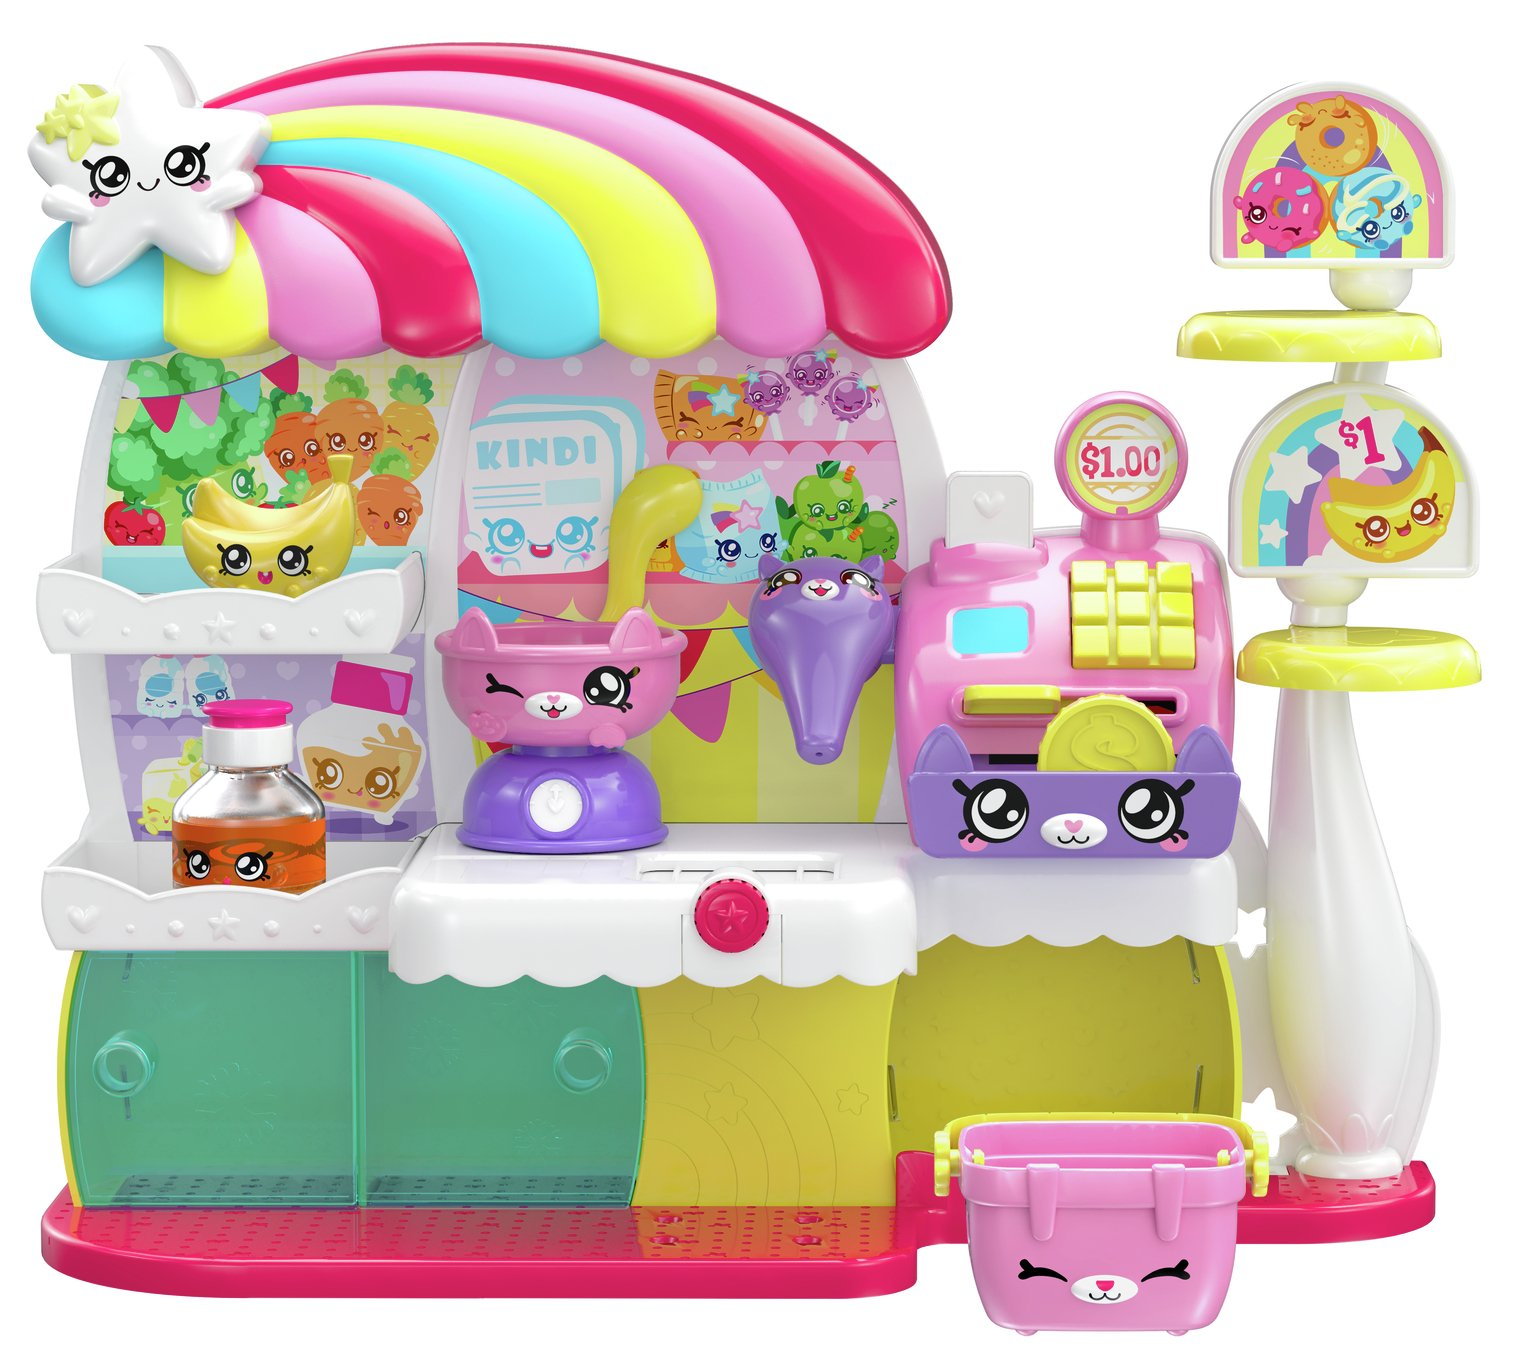 Kindi Kids Kitty Petkin Supermarket with Playmat - Shopkins